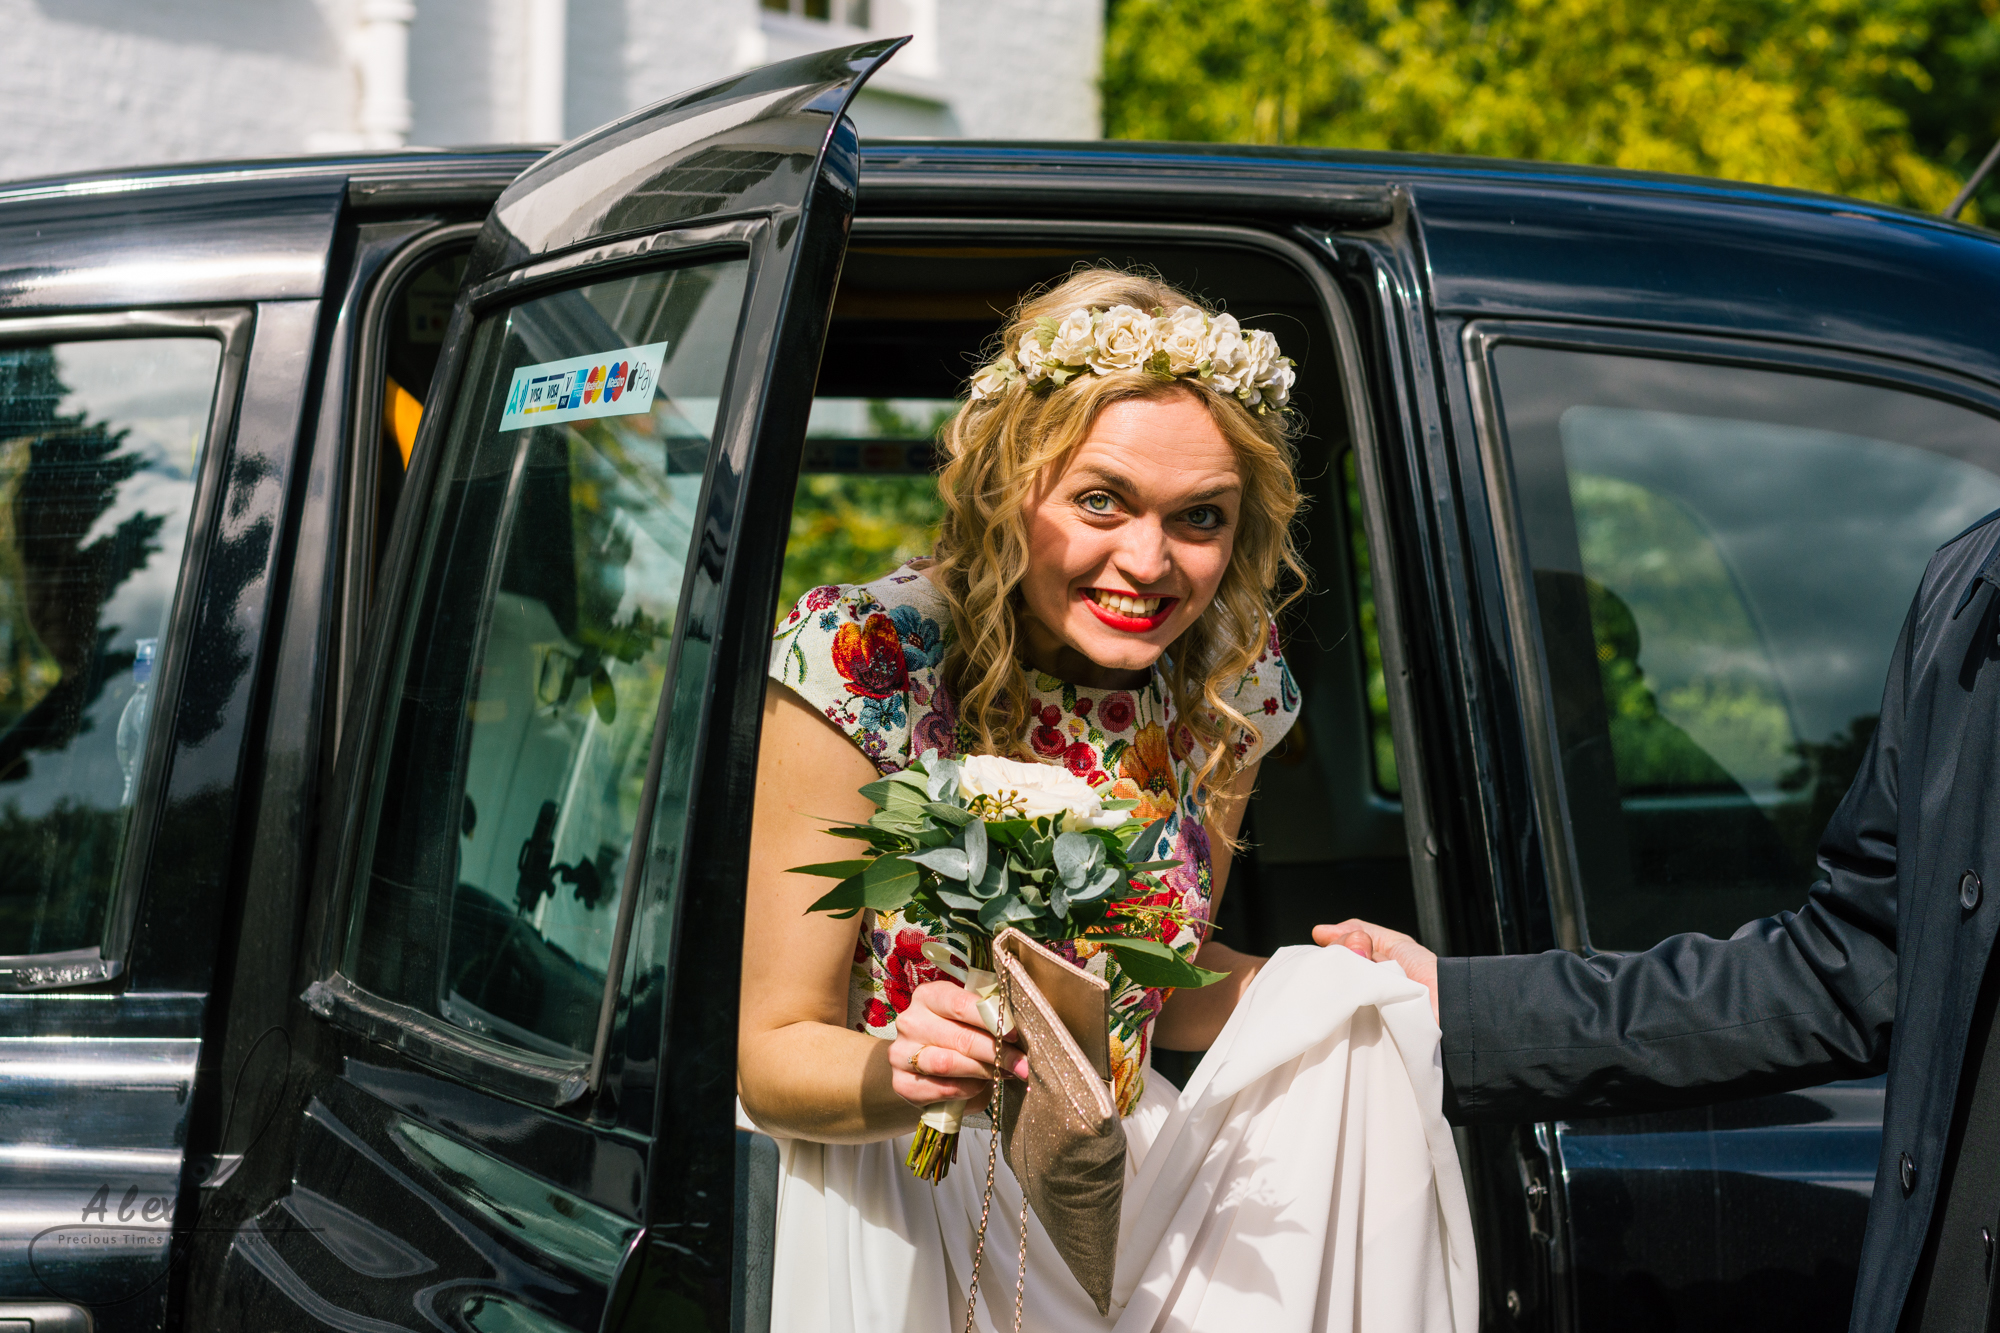 A really excited smiling bride dressed in a white dress with lace embroidery arrives at her wedding venue and gets out of the car